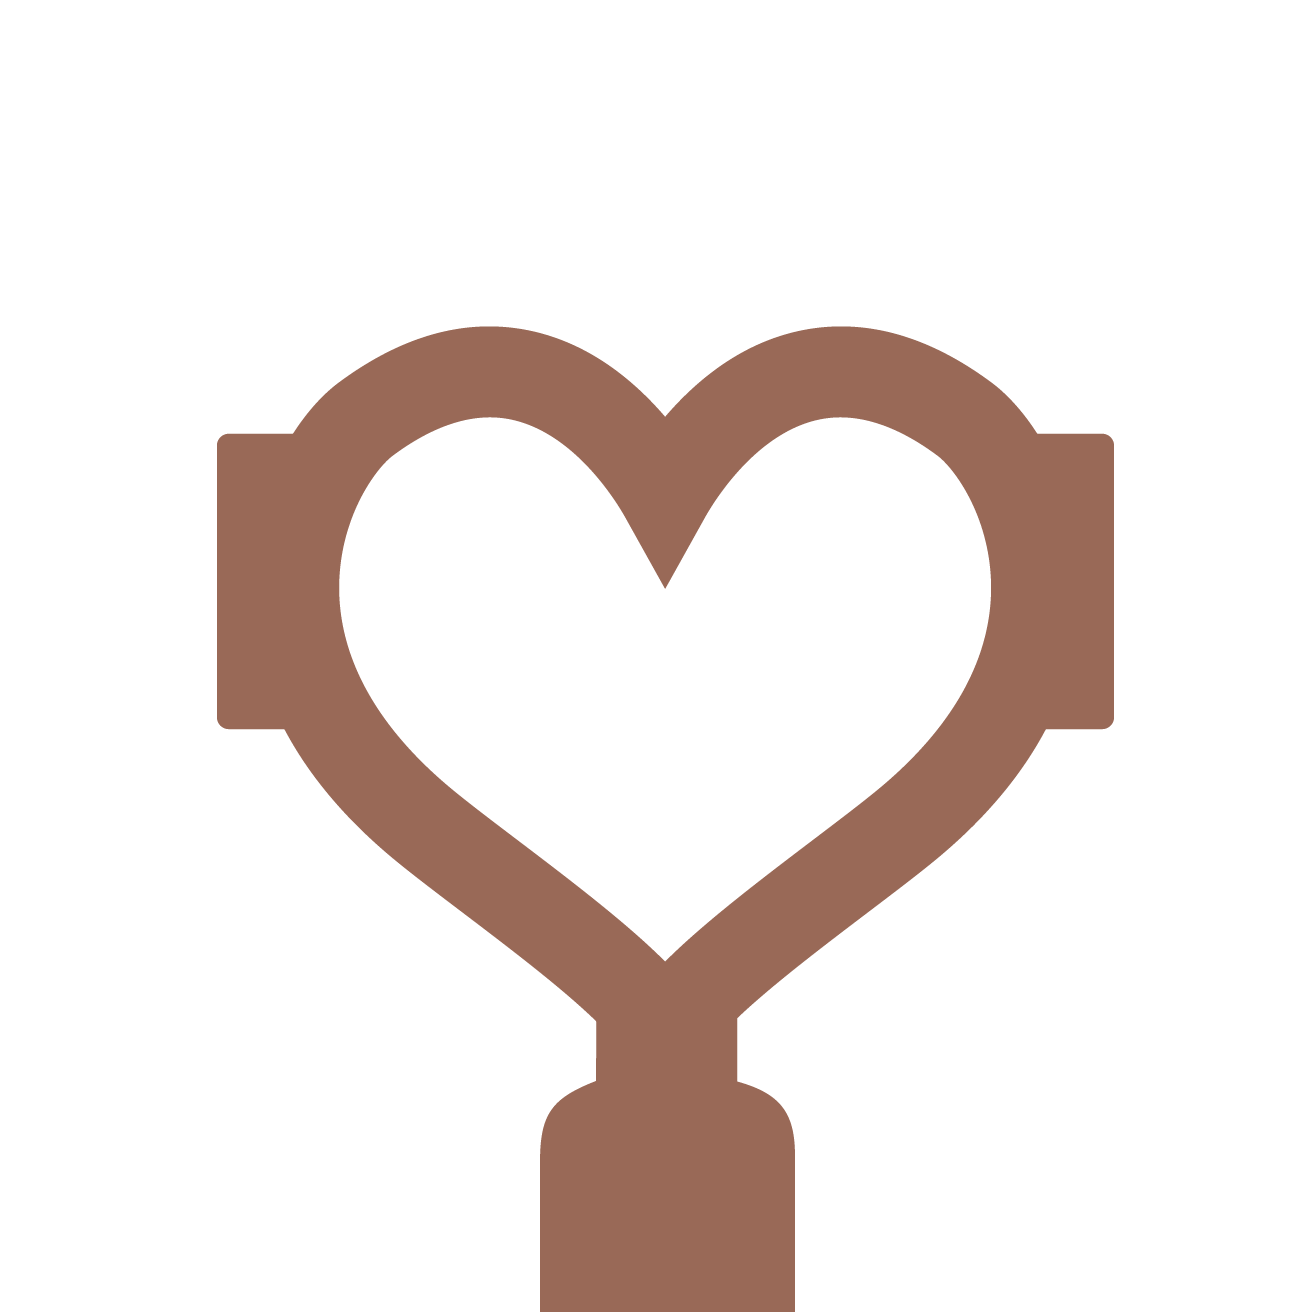 Water tank (10 cups) for KBG and KBGT by Technivorm/Moccamaster